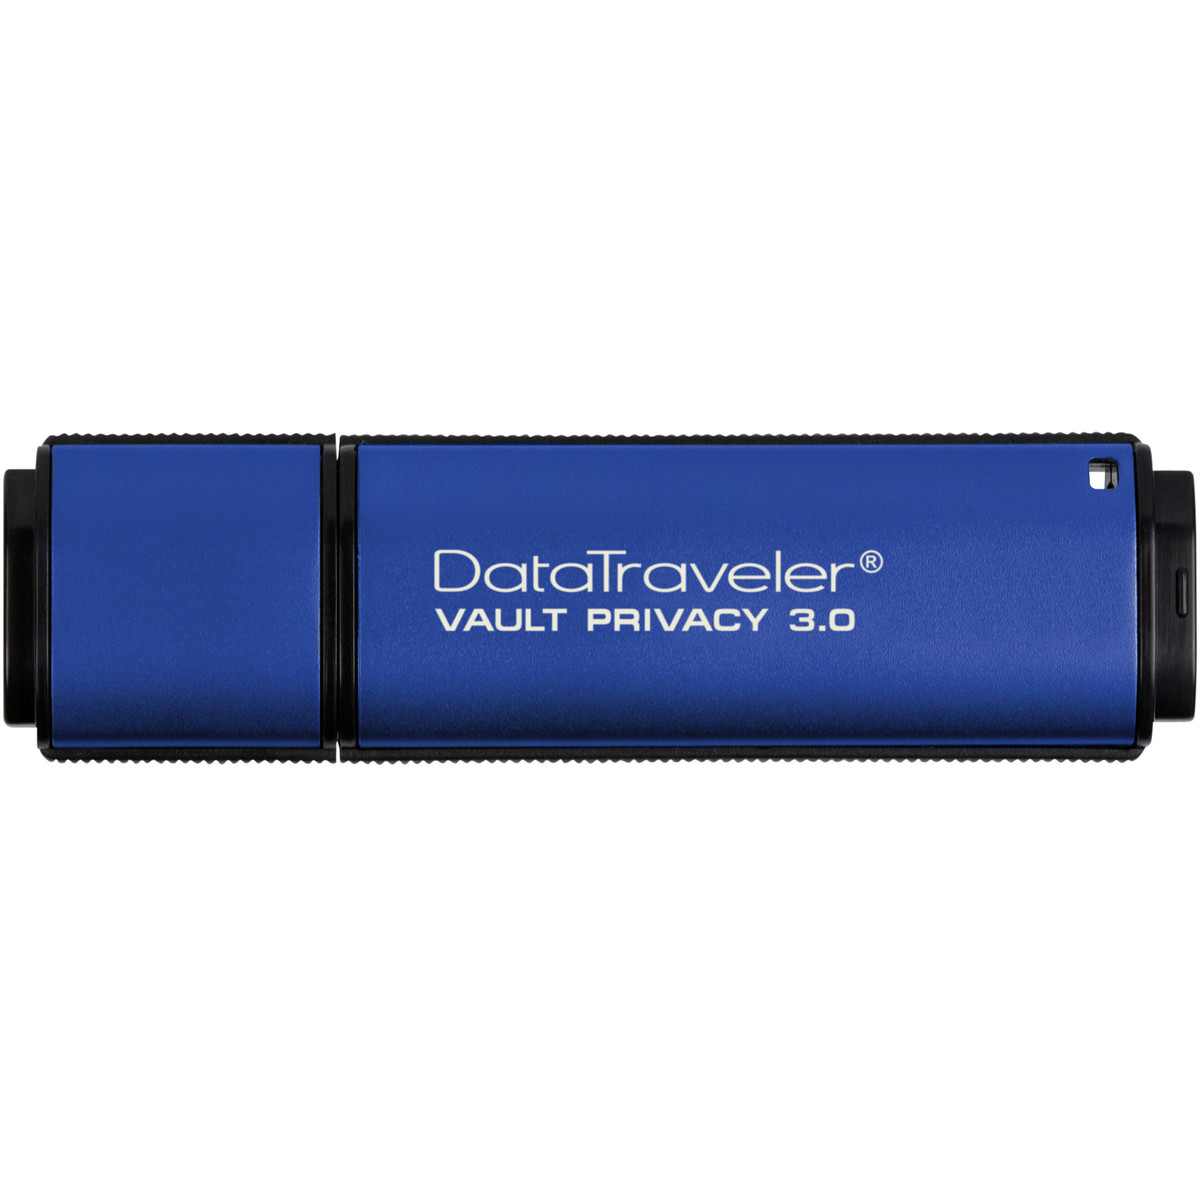 Memorie USB Memorie USB Kingston DataTraveler Vault Privacy, 16 GB, USB 3.0